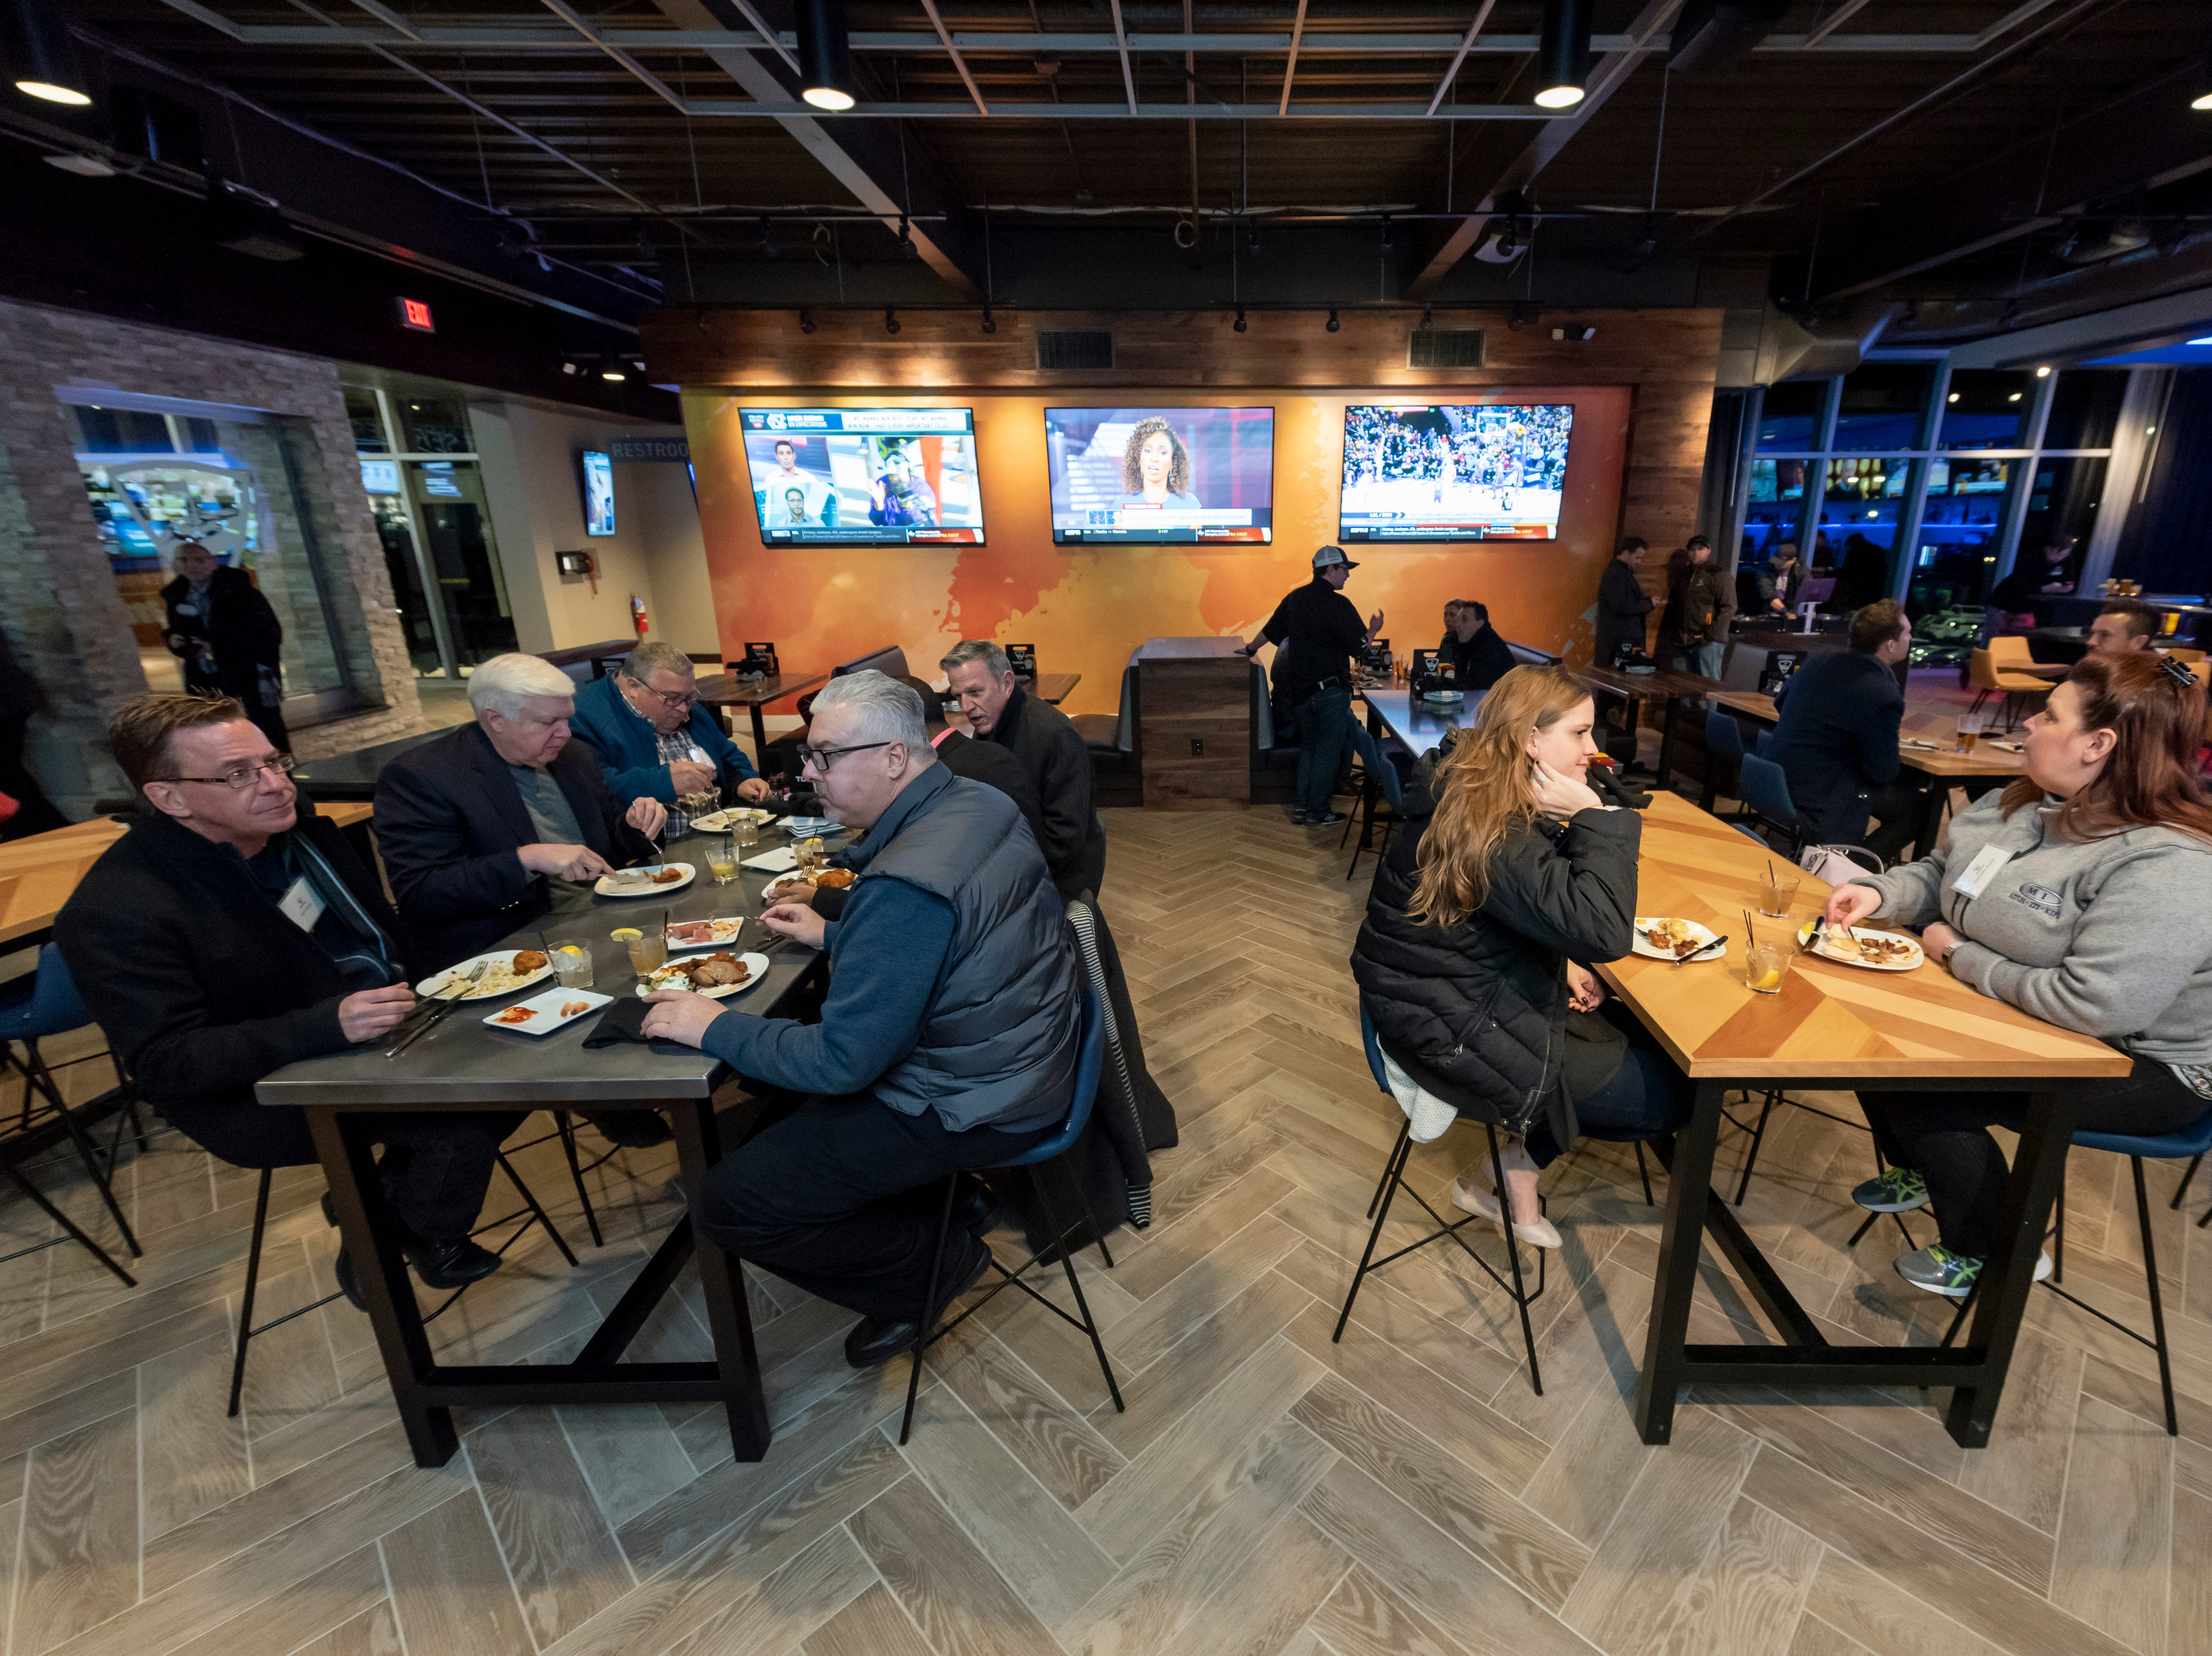 The facility includes a bar and space for private events.